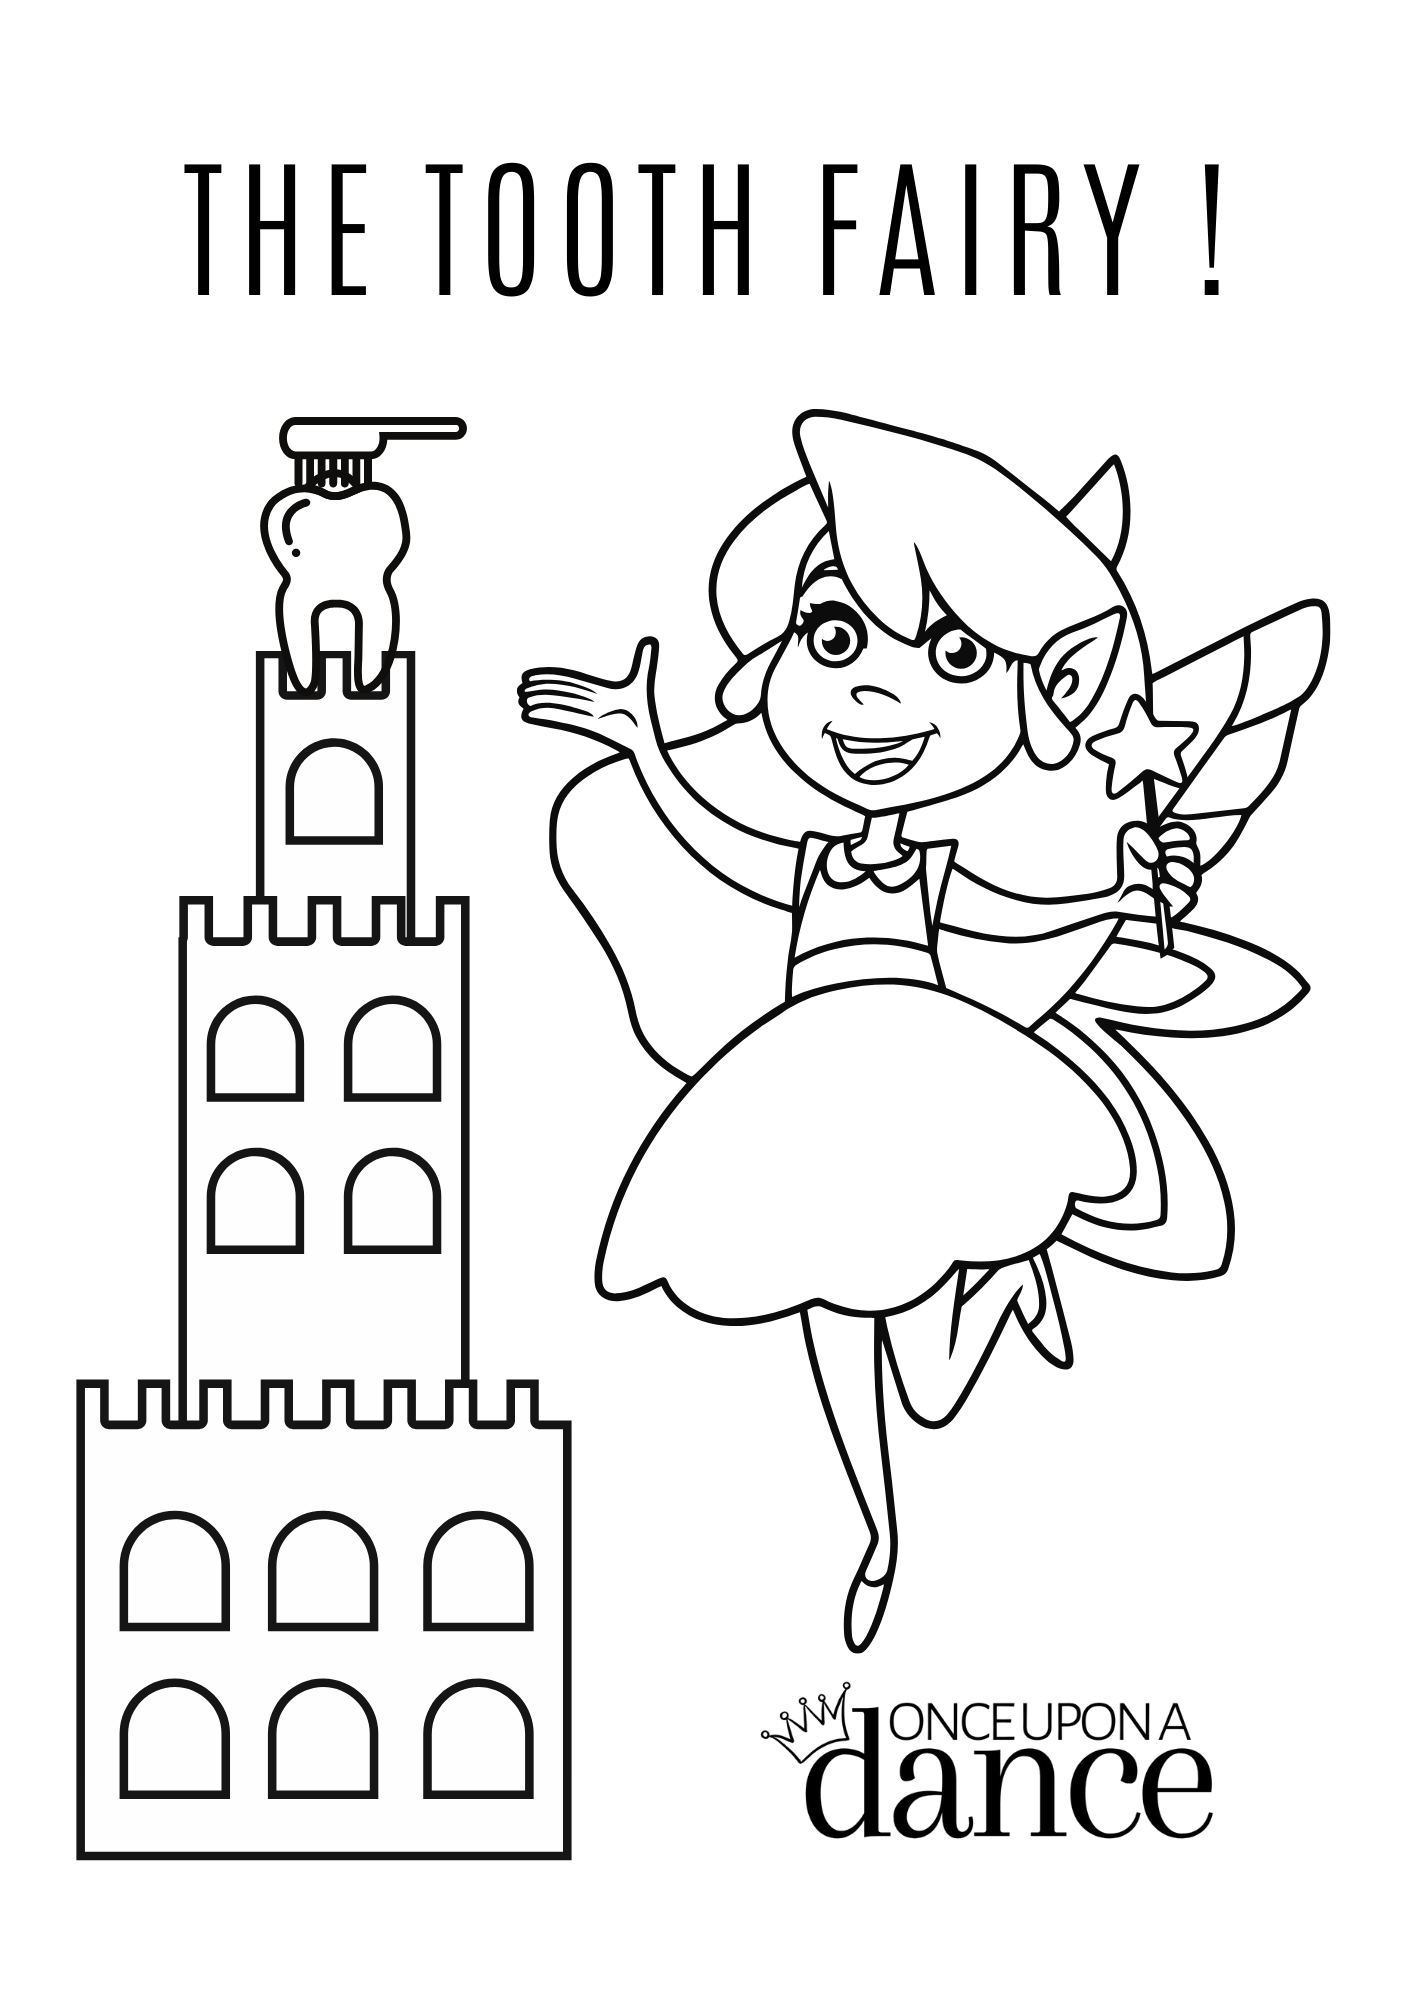 The tooth fairy ballet